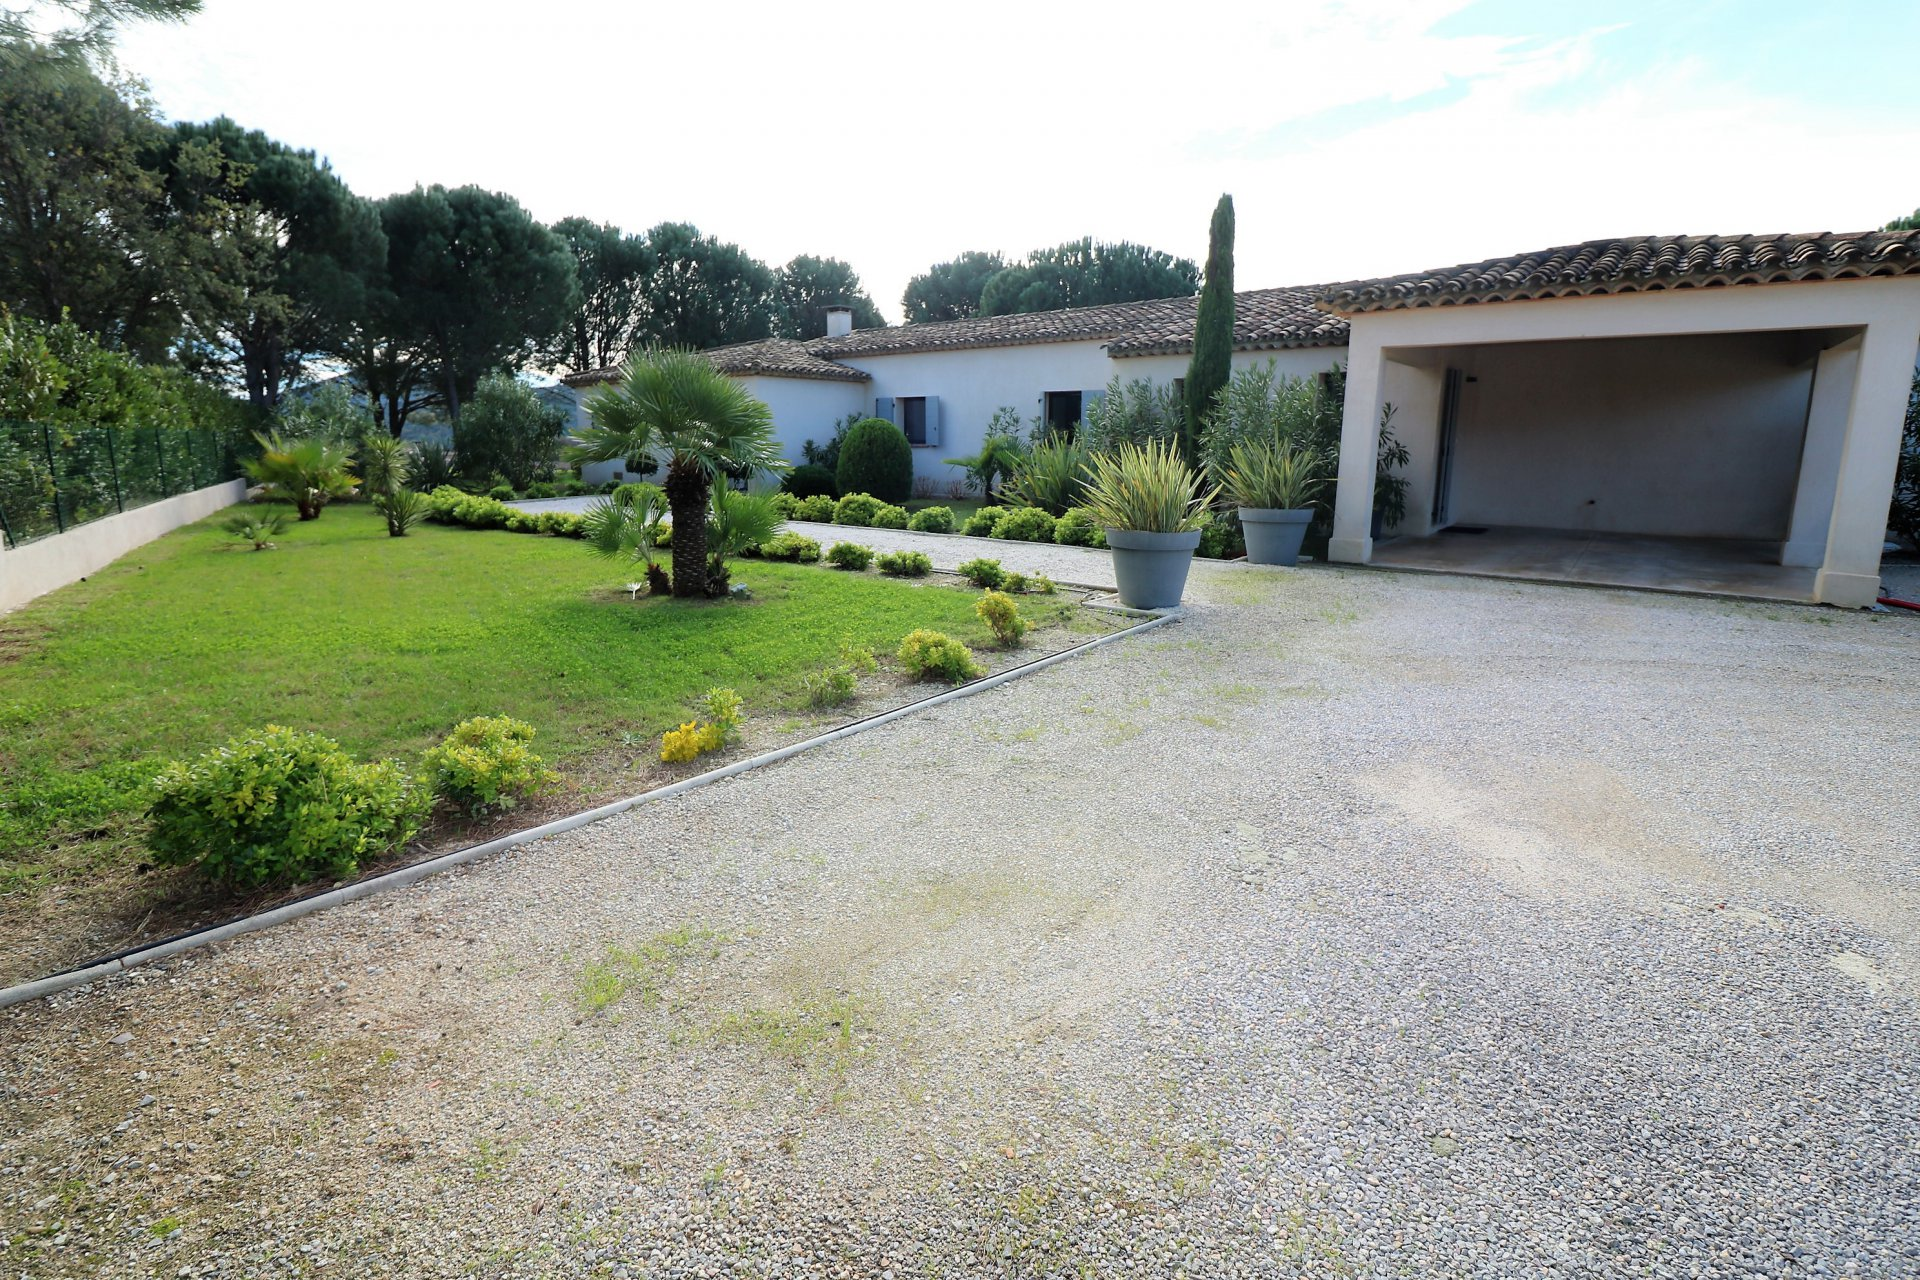 For sale in Plan de la Tour modern villa in the vineyards, close to the center.